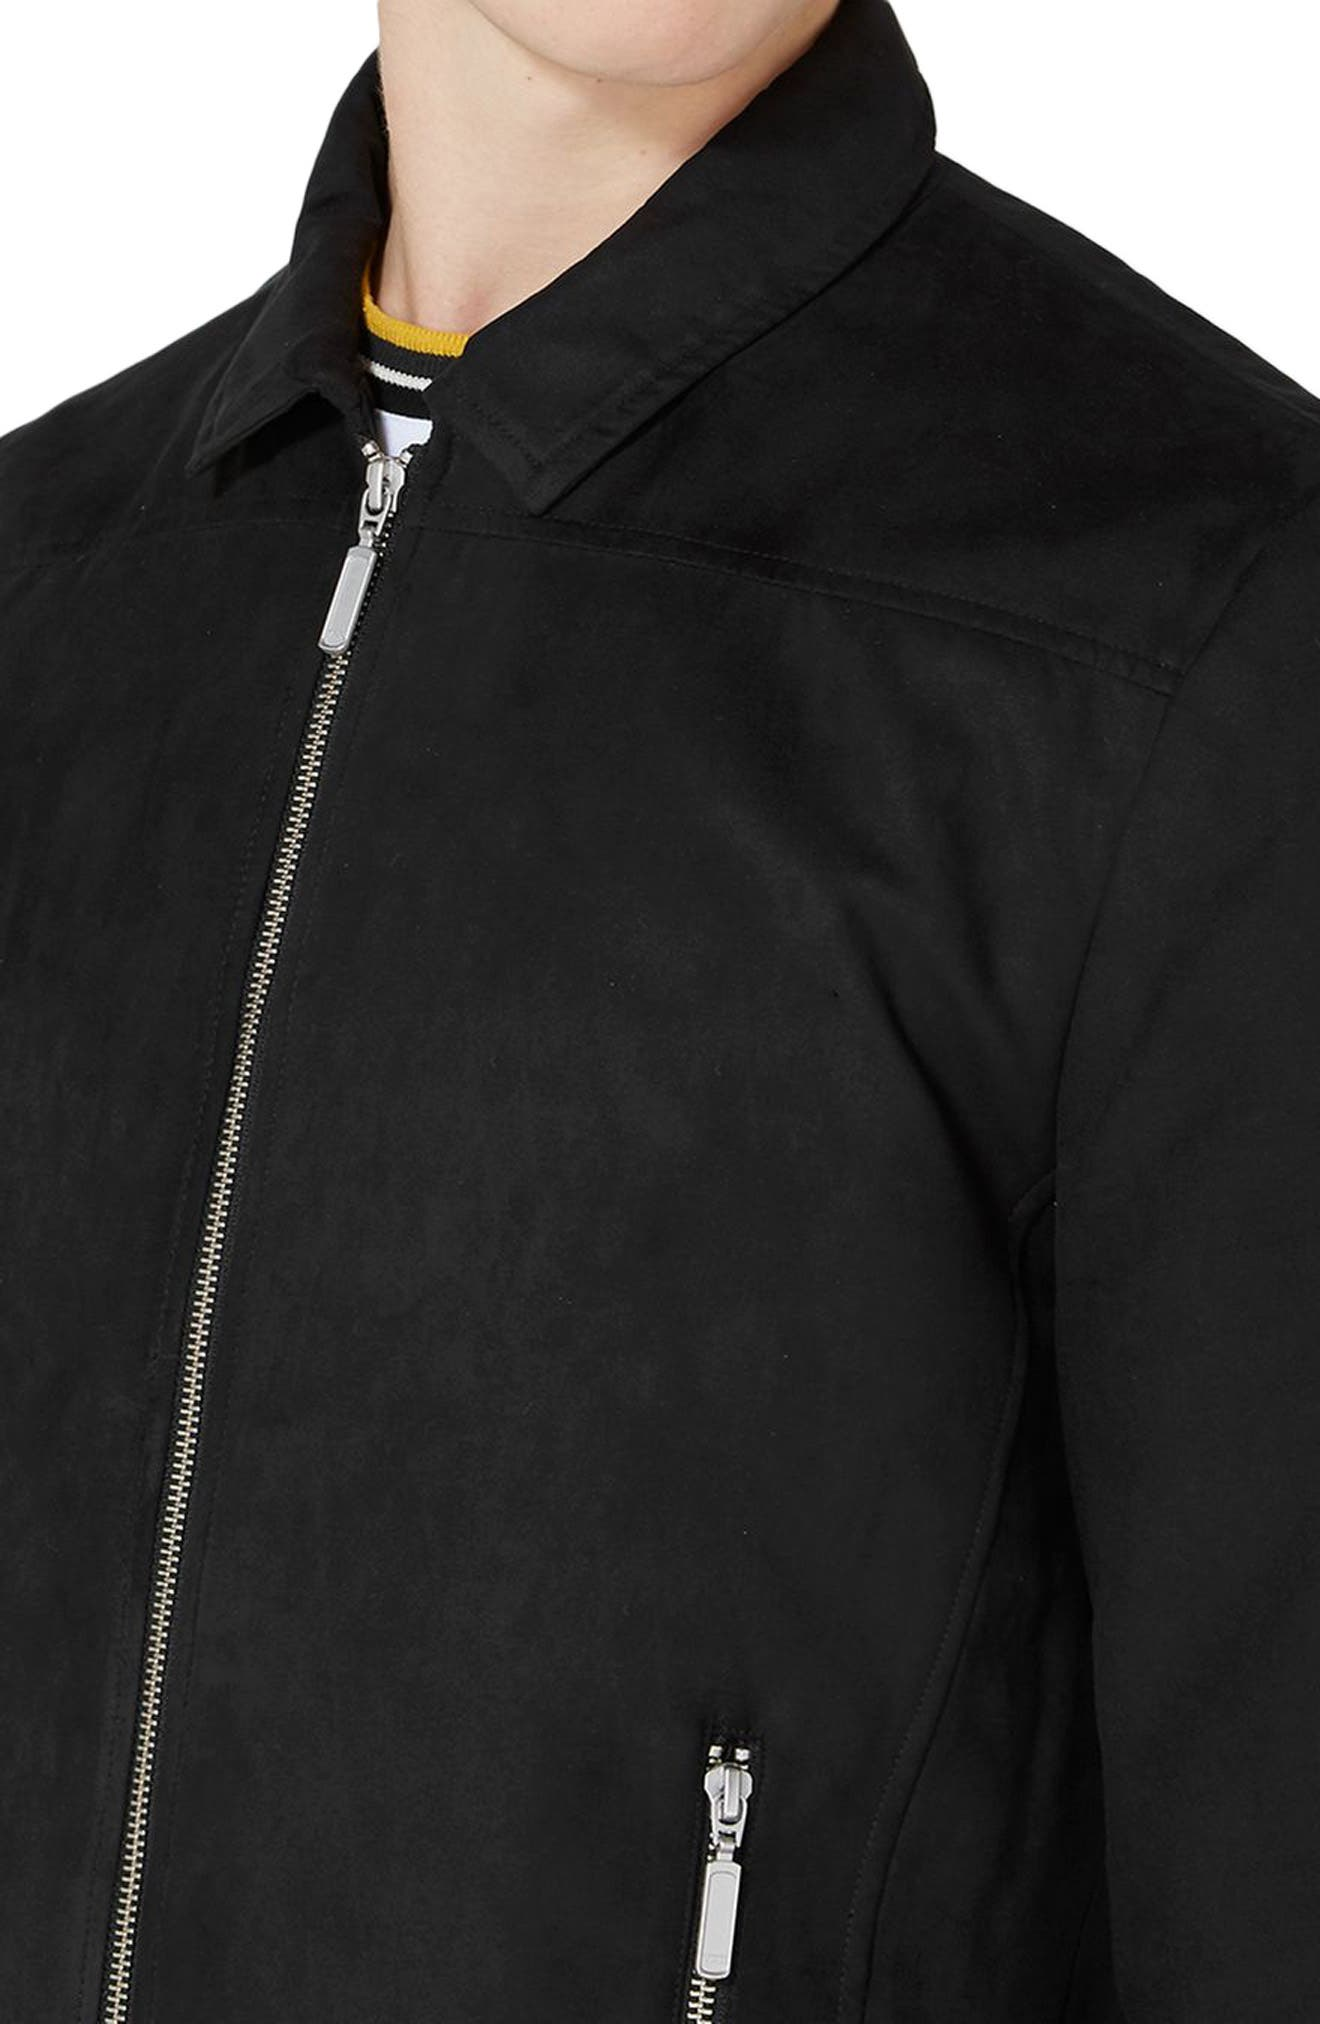 Harrington Jacket,                             Alternate thumbnail 3, color,                             001